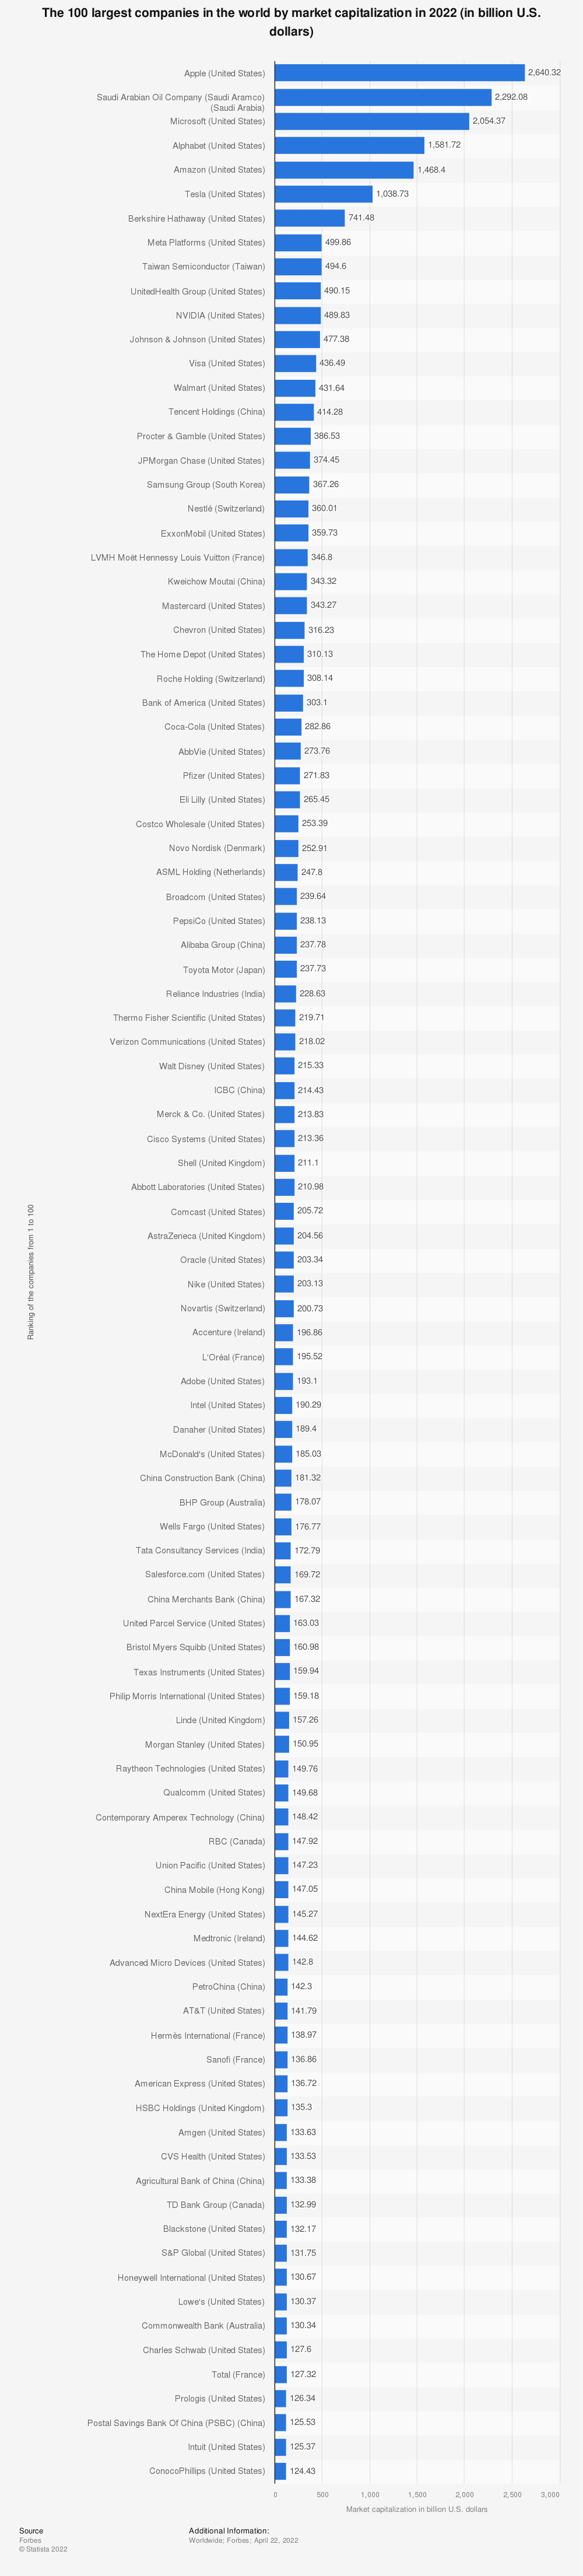 Statistic: The 100 largest companies in the world by market capitalization in 2021 (in billion U.S. dollars) | Statista